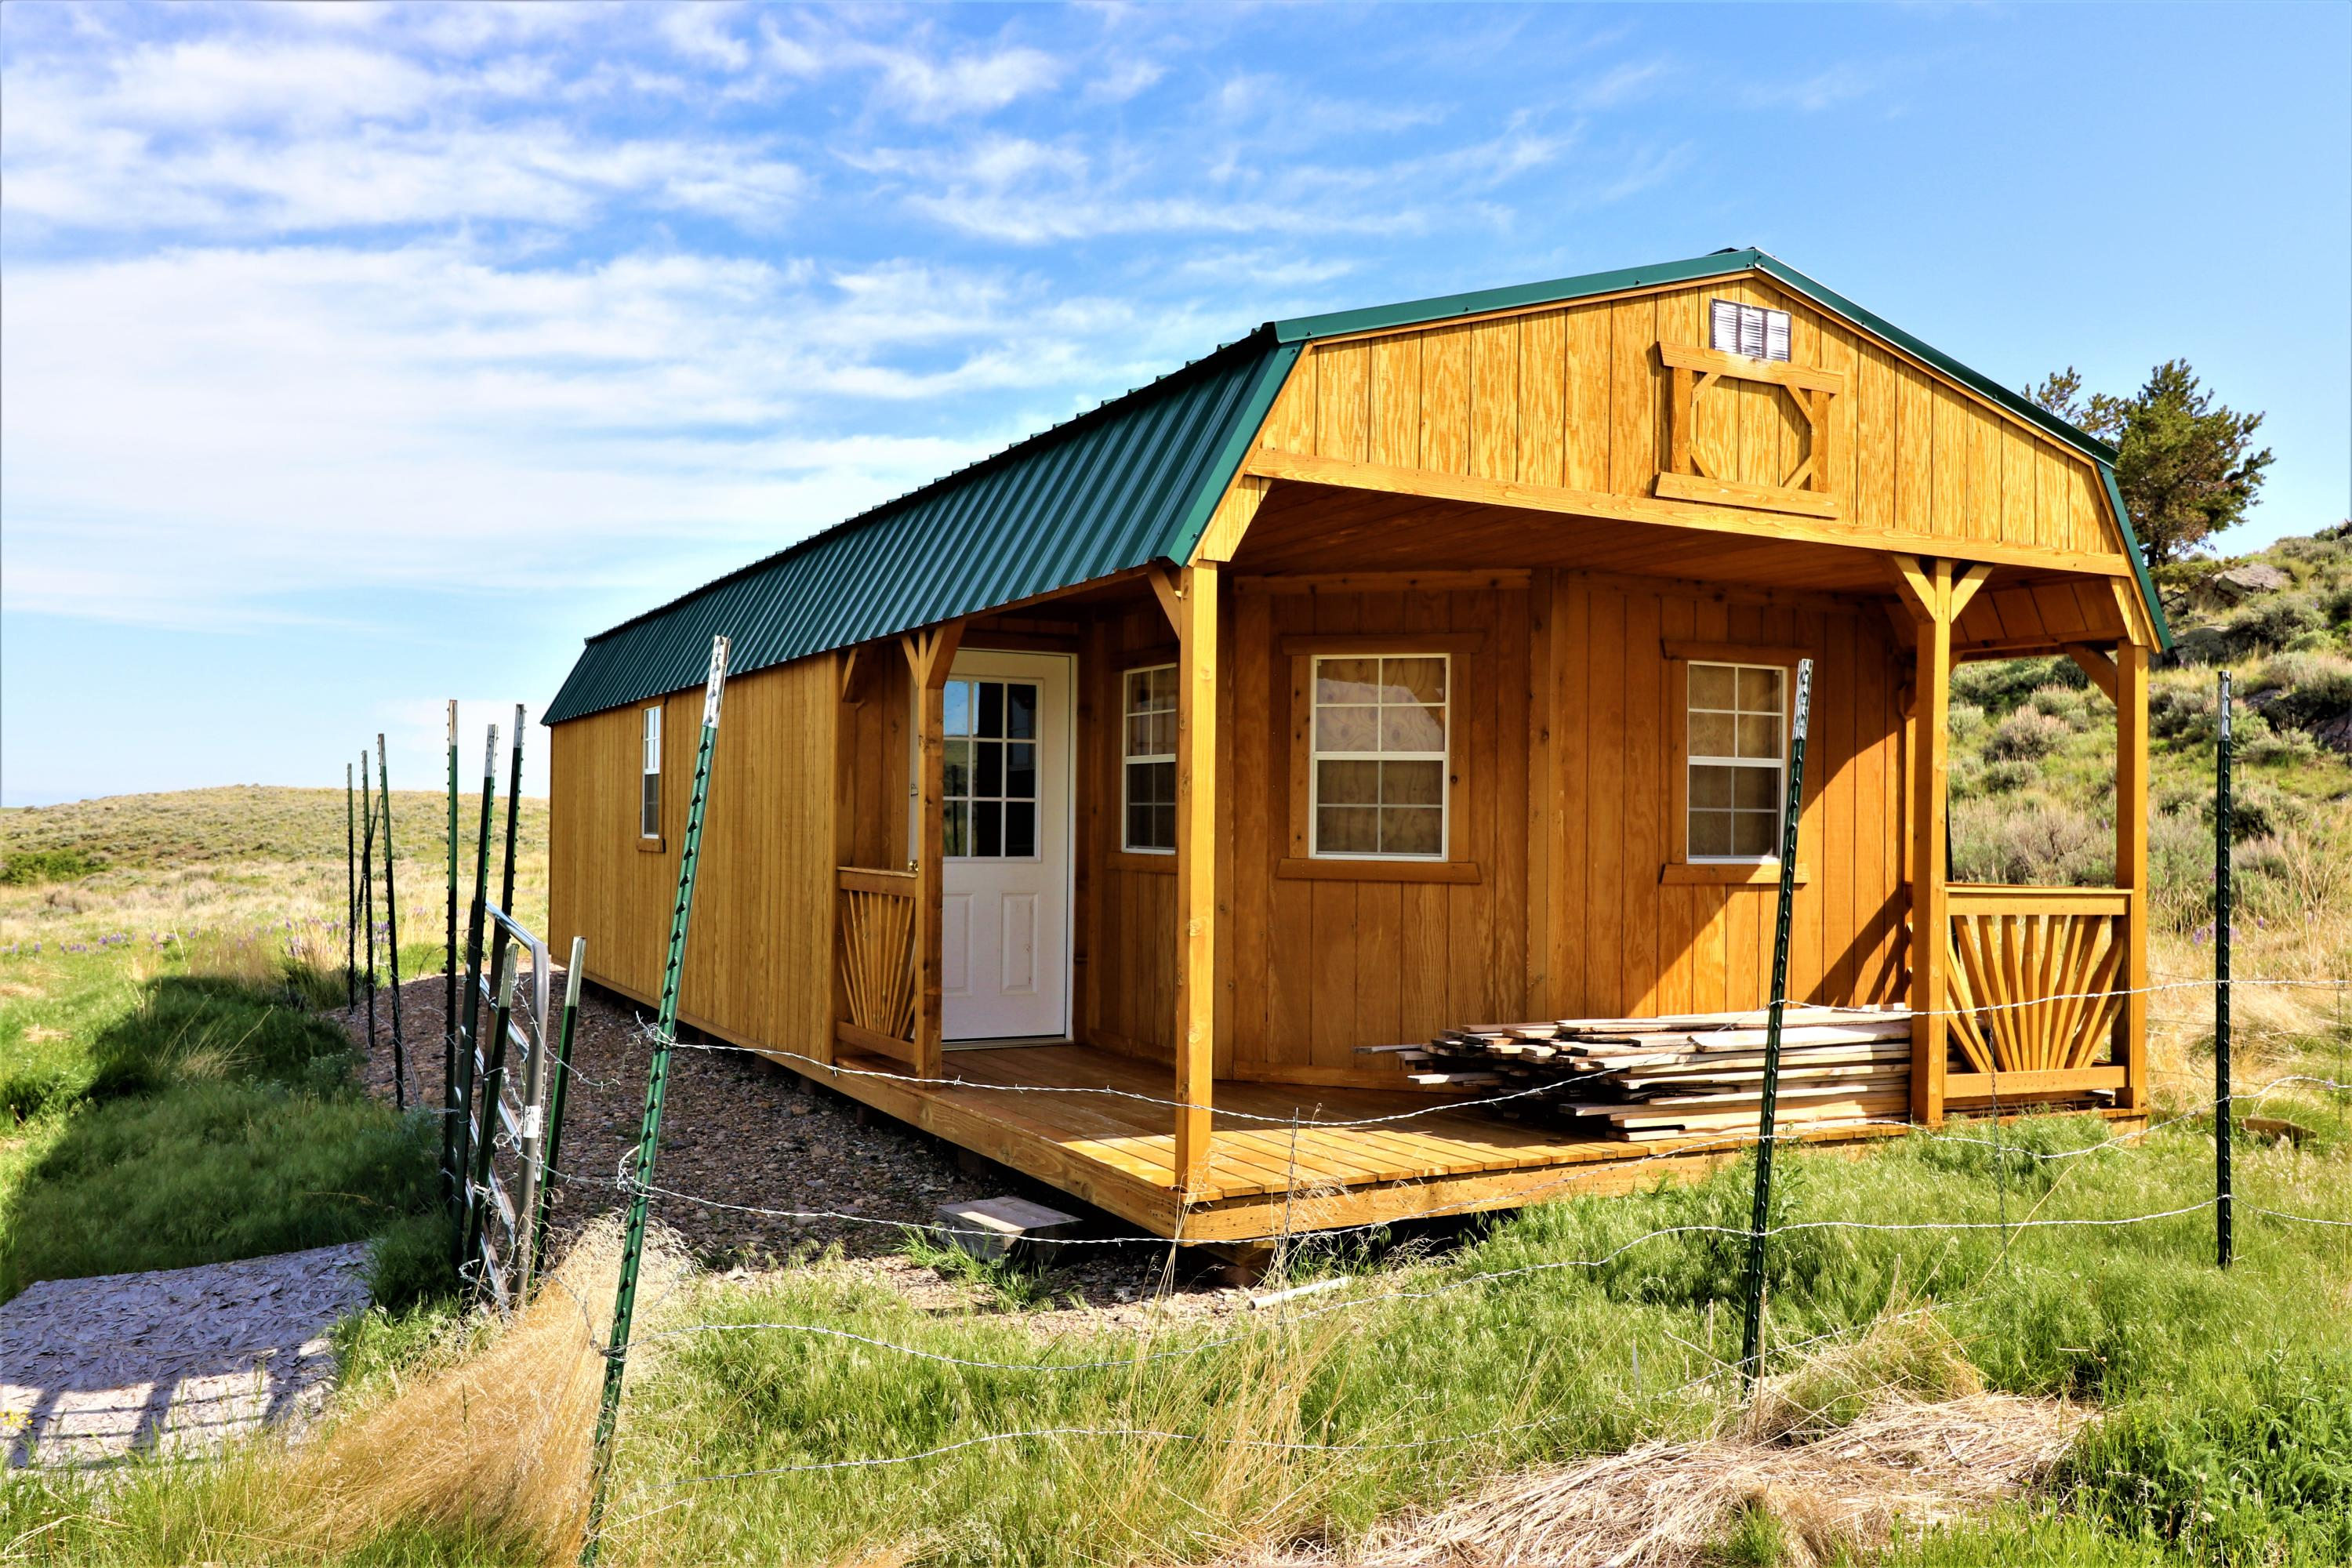 If you are looking for a cabin to complete as your own this is it!  Situated on 20+/- acres with a small stream, stock water rights, a well, septic and solar energy.  No heat source.  Approximately 15 minutes south of White Sulphur Springs in the Black Butte area.